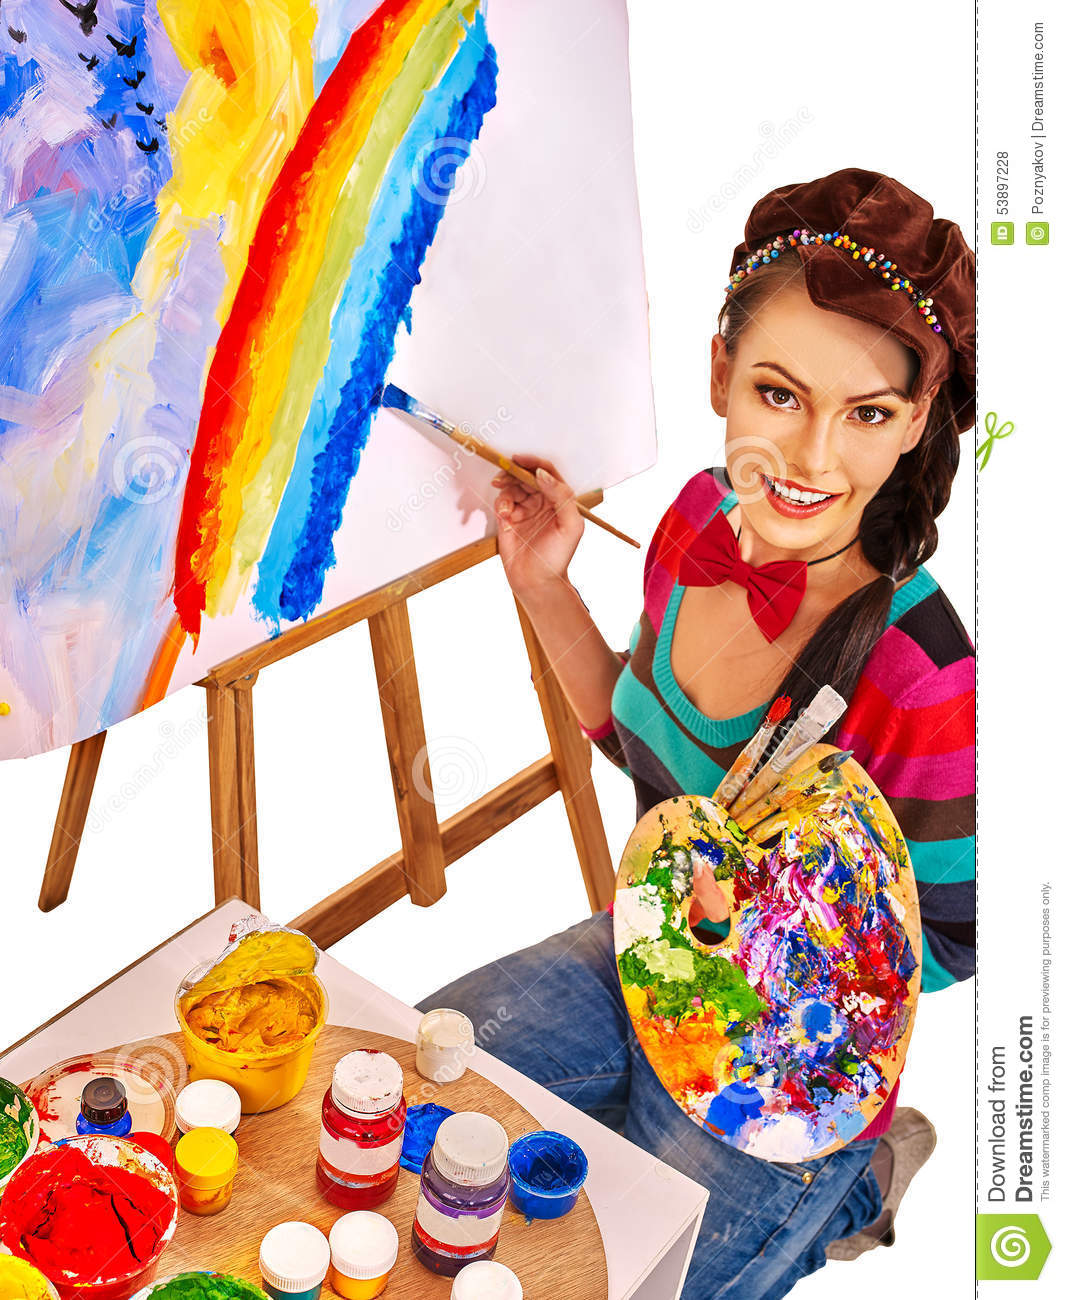 Female Artist At Work Stock Photo - Image: 53897228